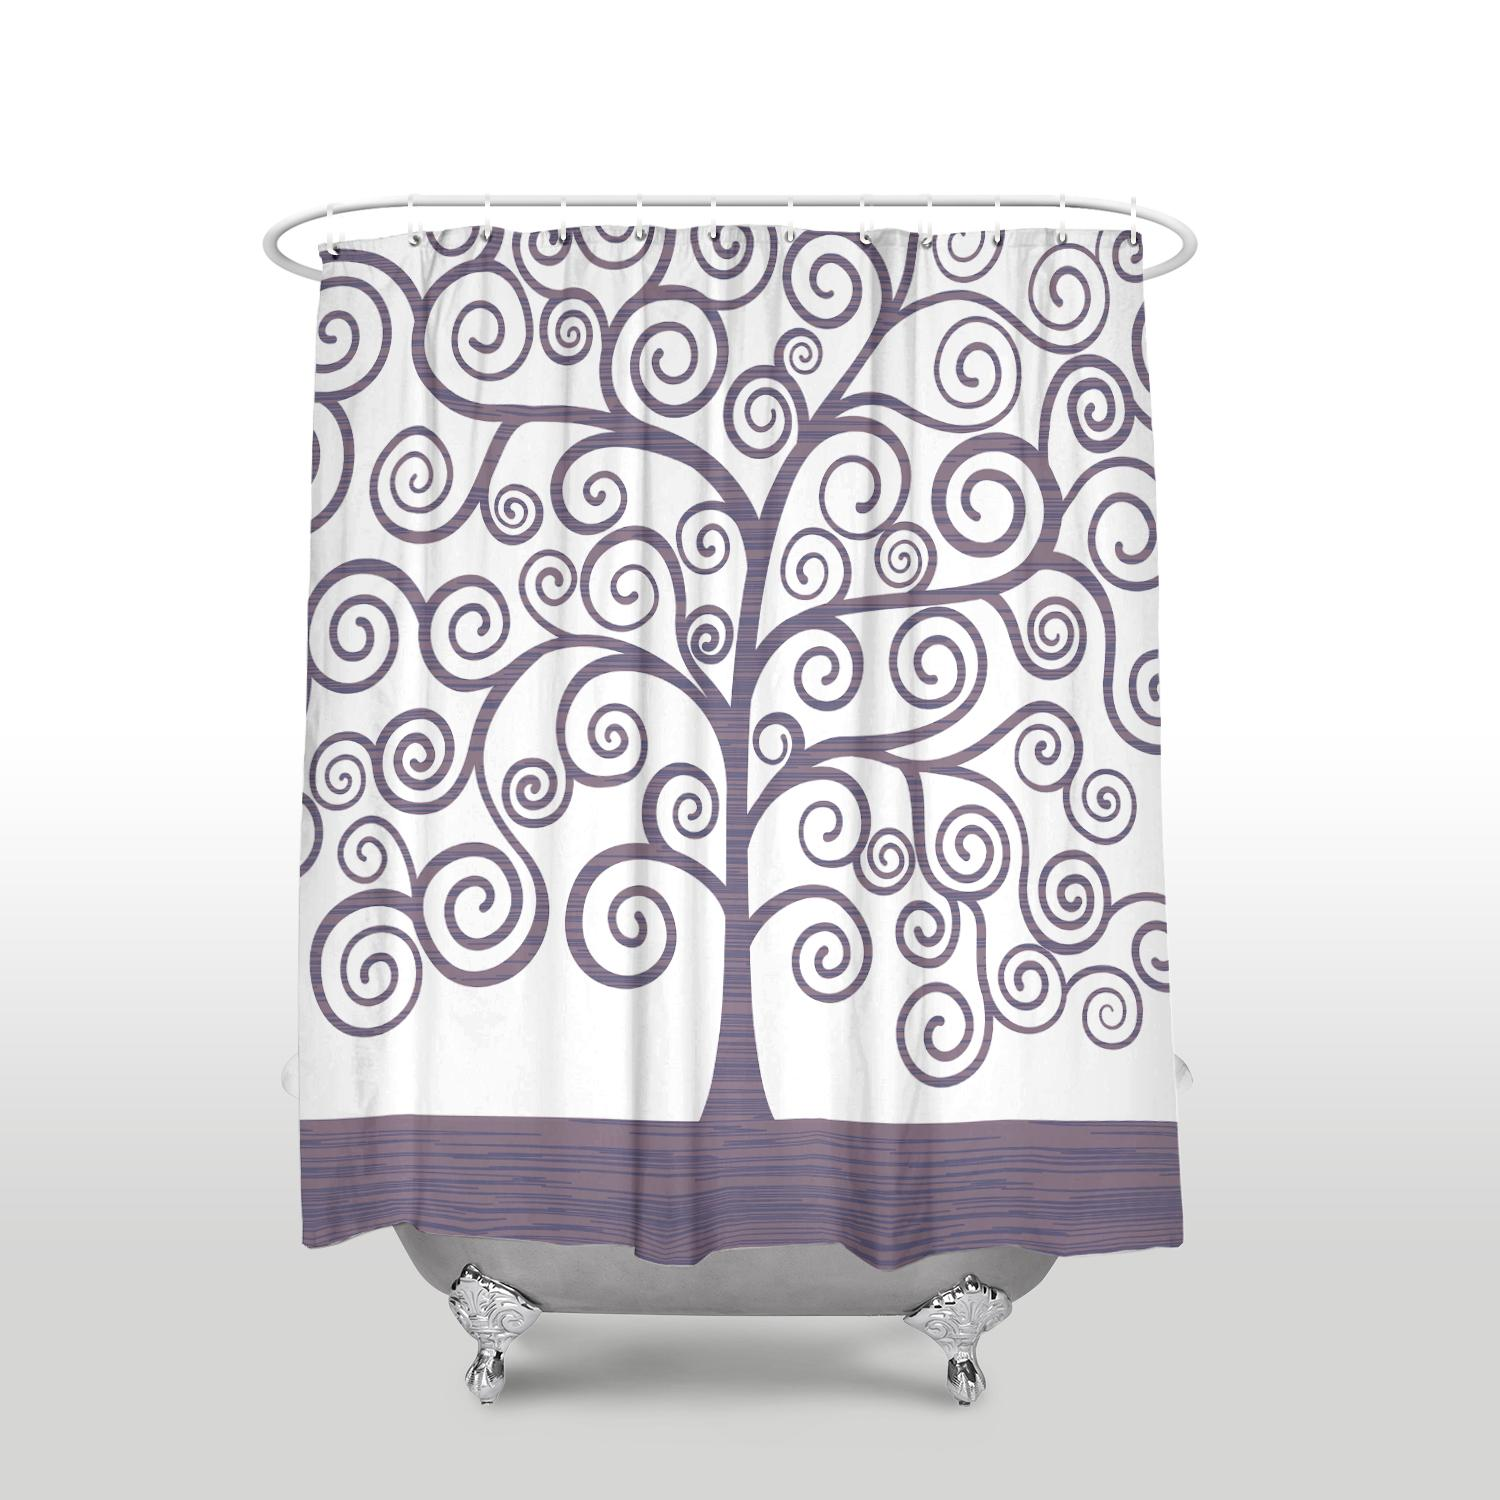 2019 New Waterproof Gustav Klimt Tree Of Life Printed Shower Curtain Polyester Fabric Purple Bathroom Curtains For Home Decorations From Huayama